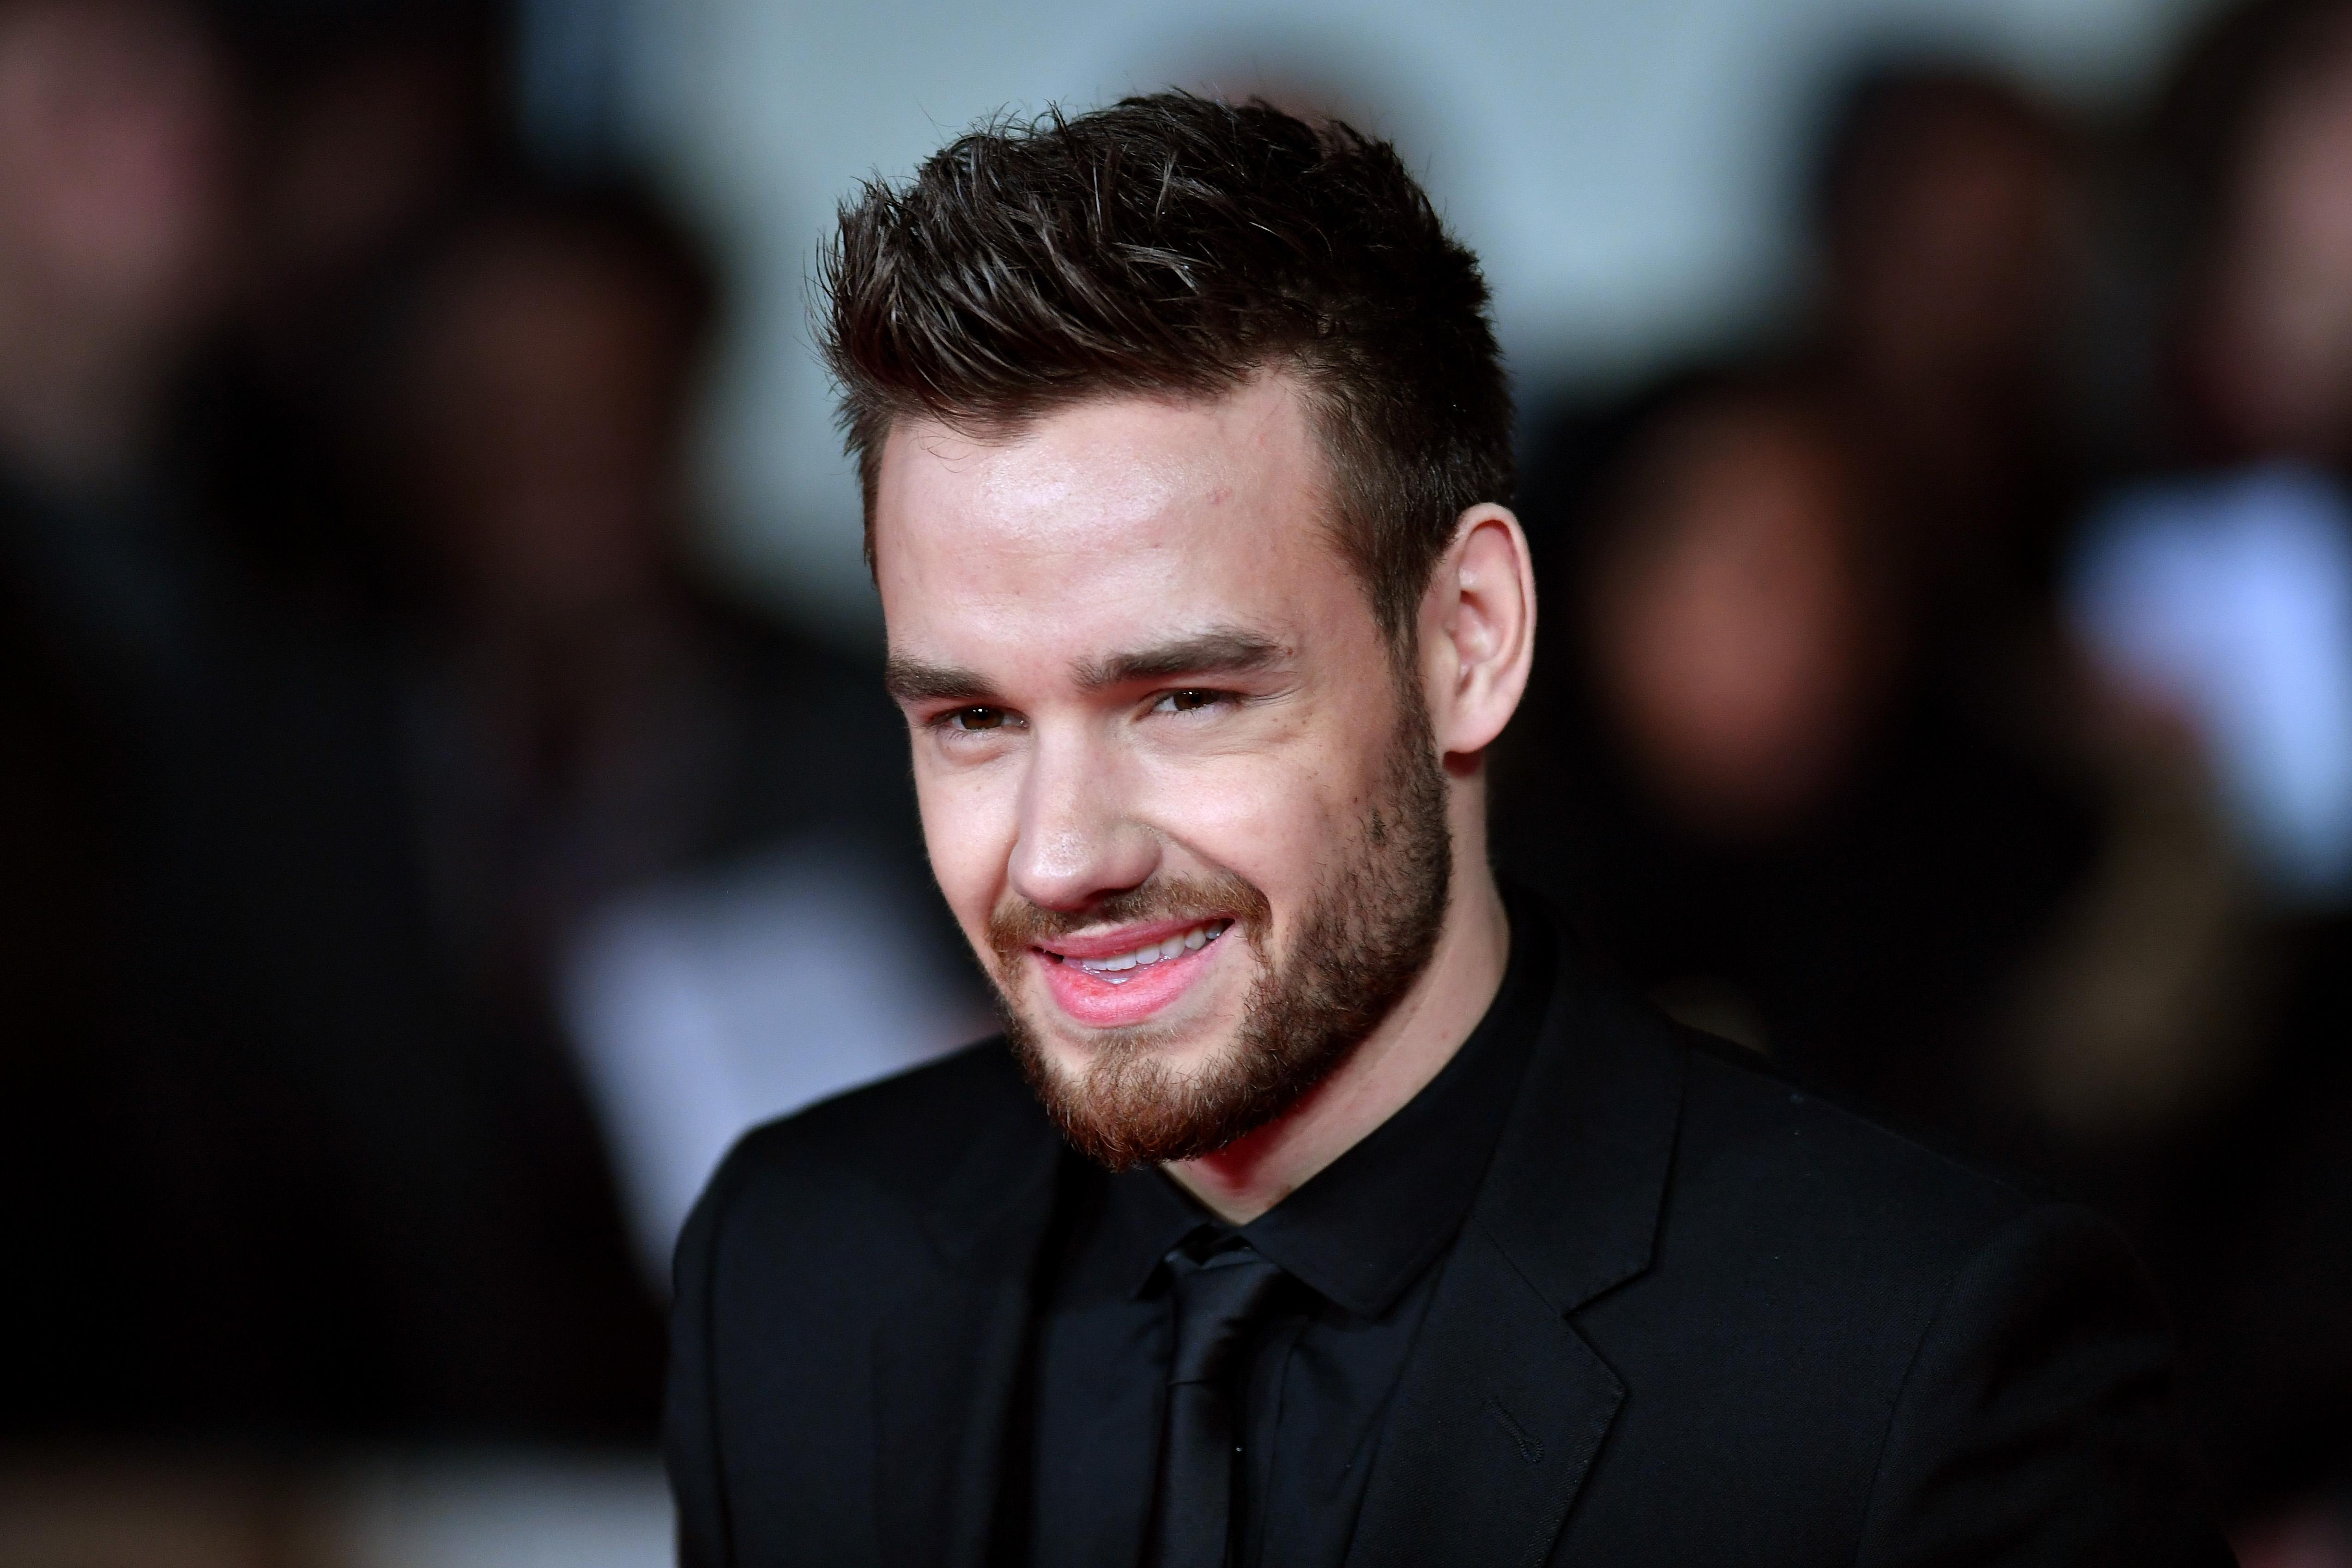 Liam Payne 'pleads the fifth' when asked about dating Naomi Campbell